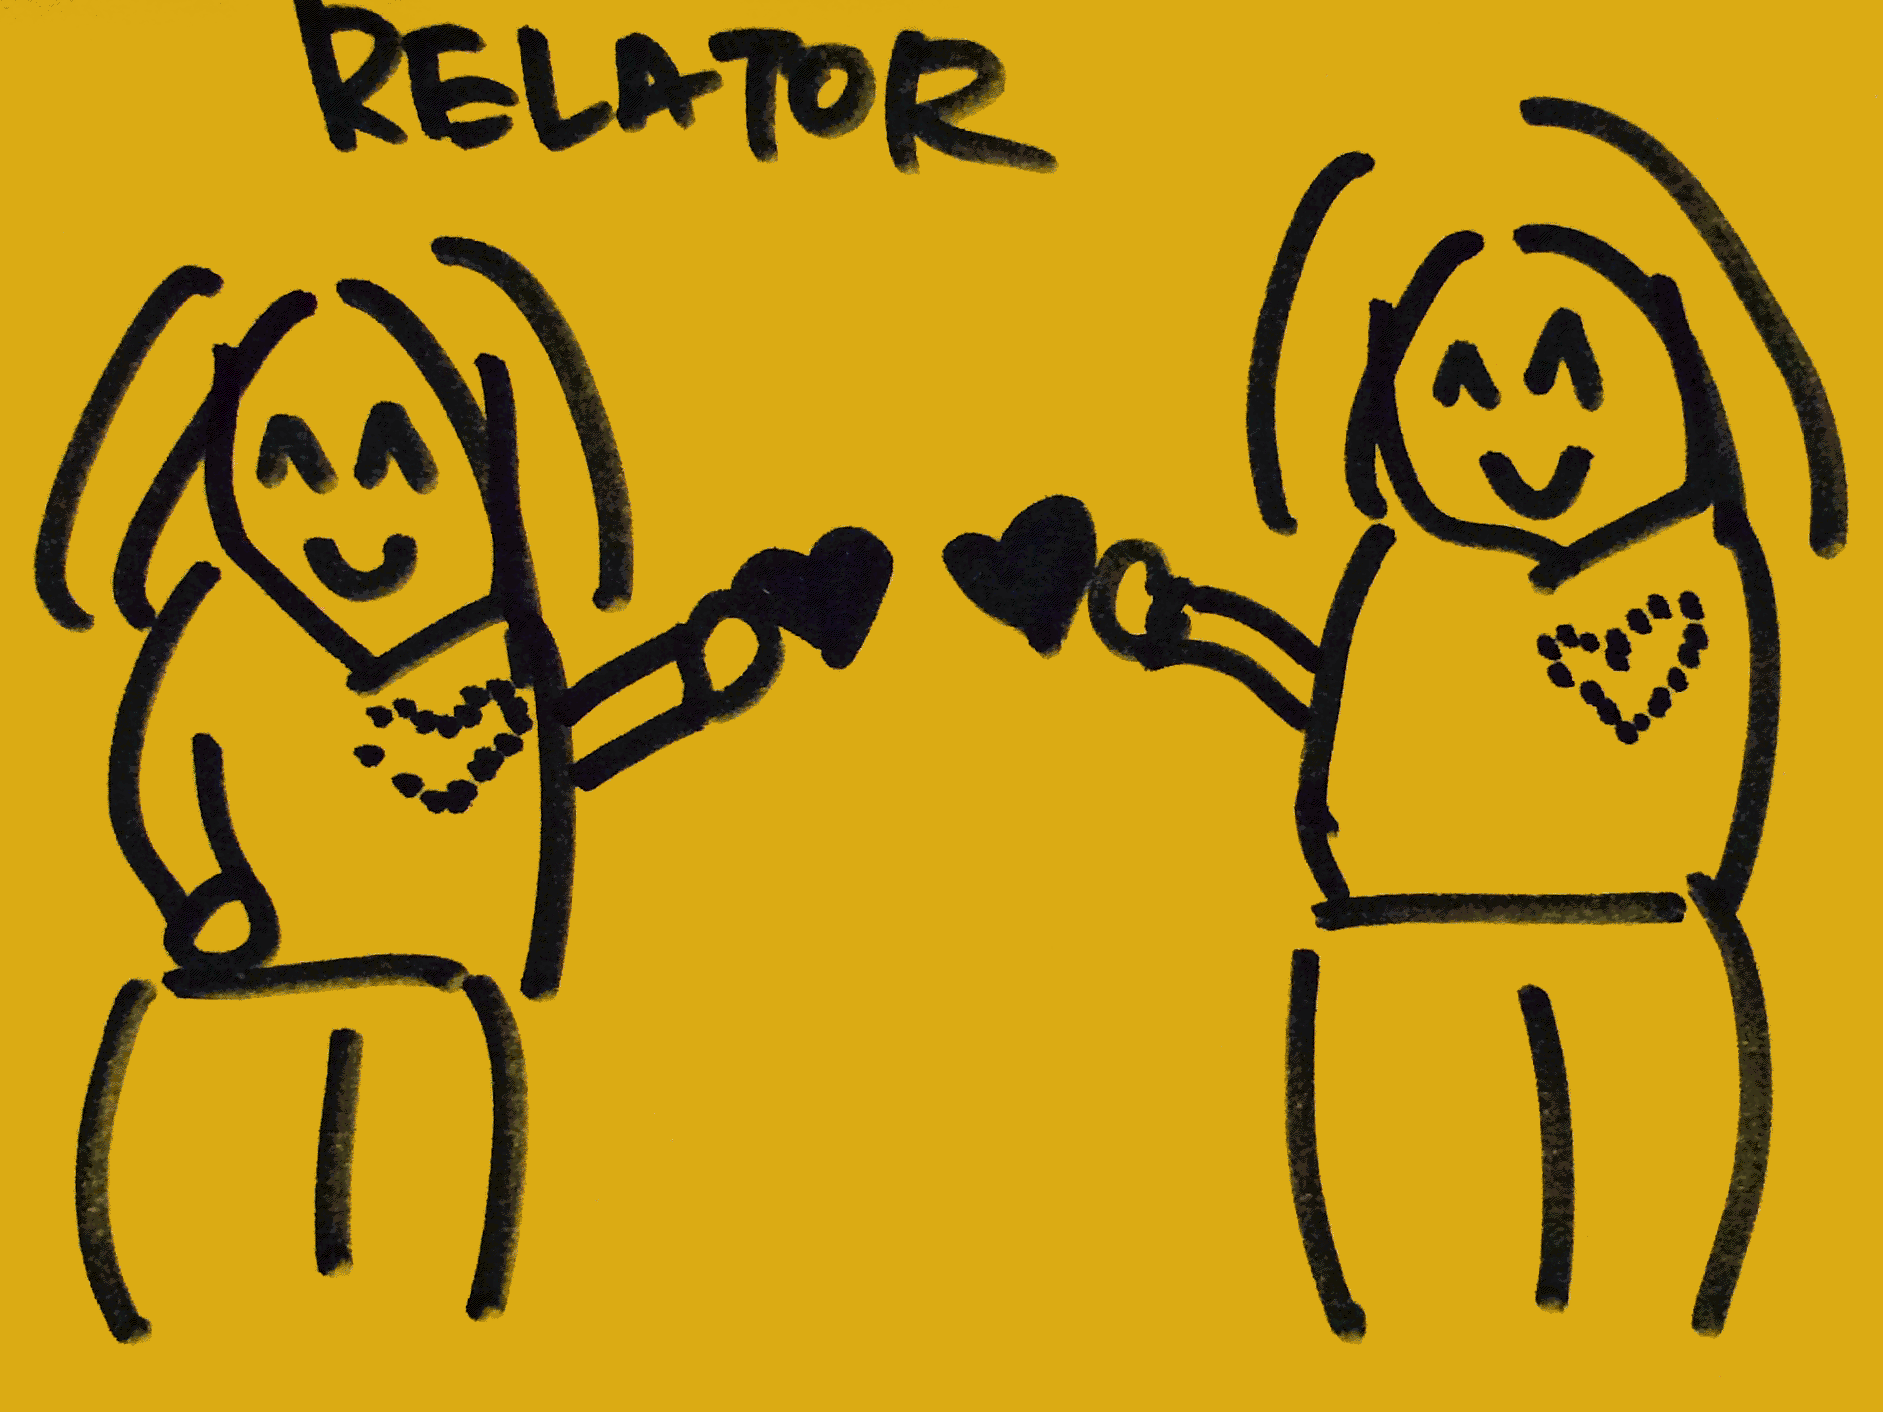 Relator Strengthsfinder Sharing Hearts